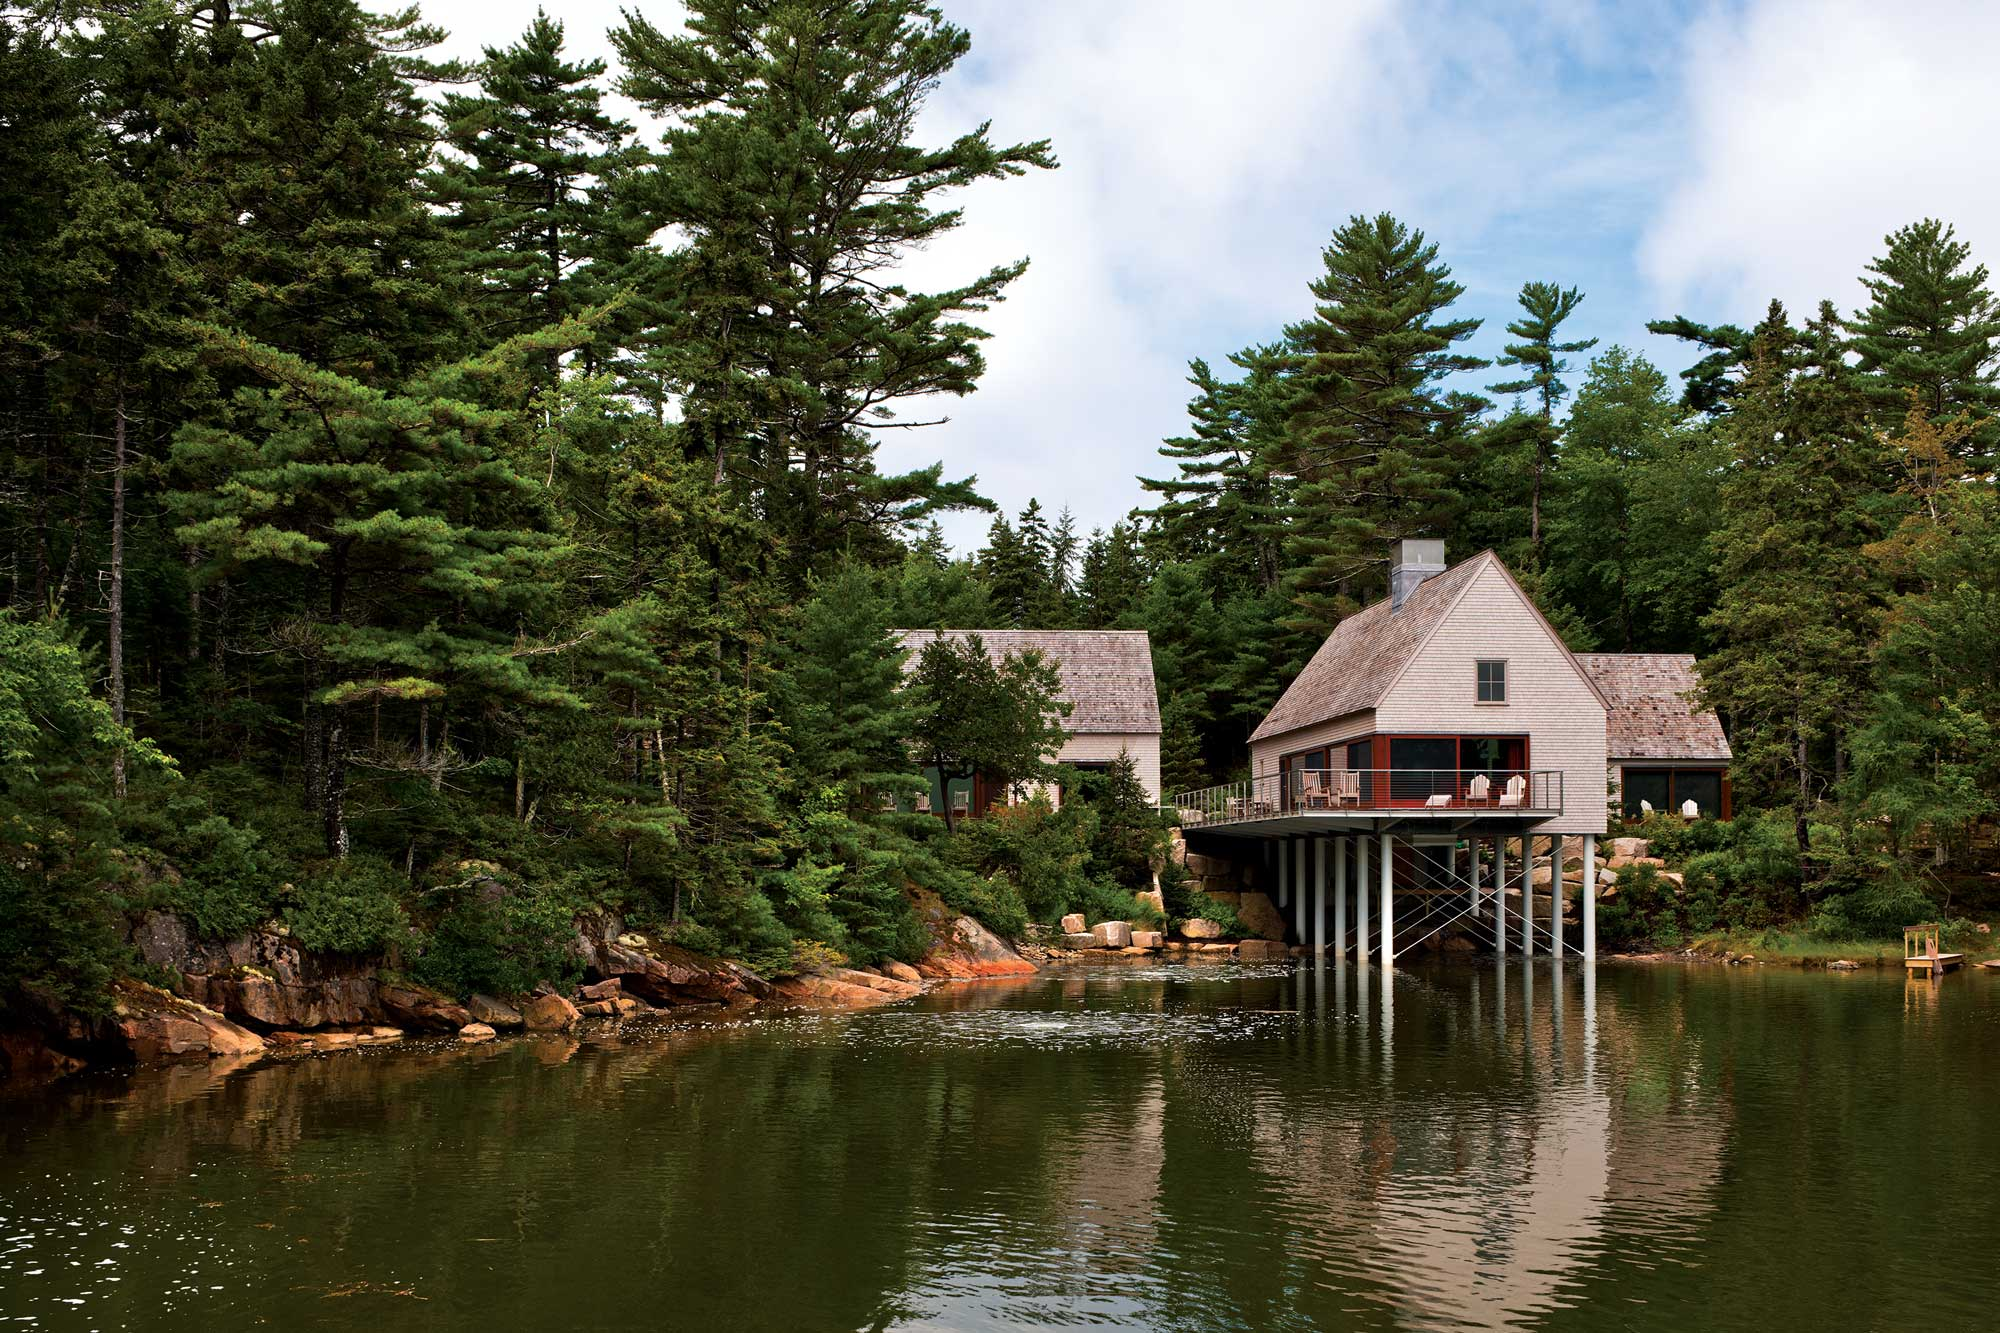 House on a Pond, Mount Desert